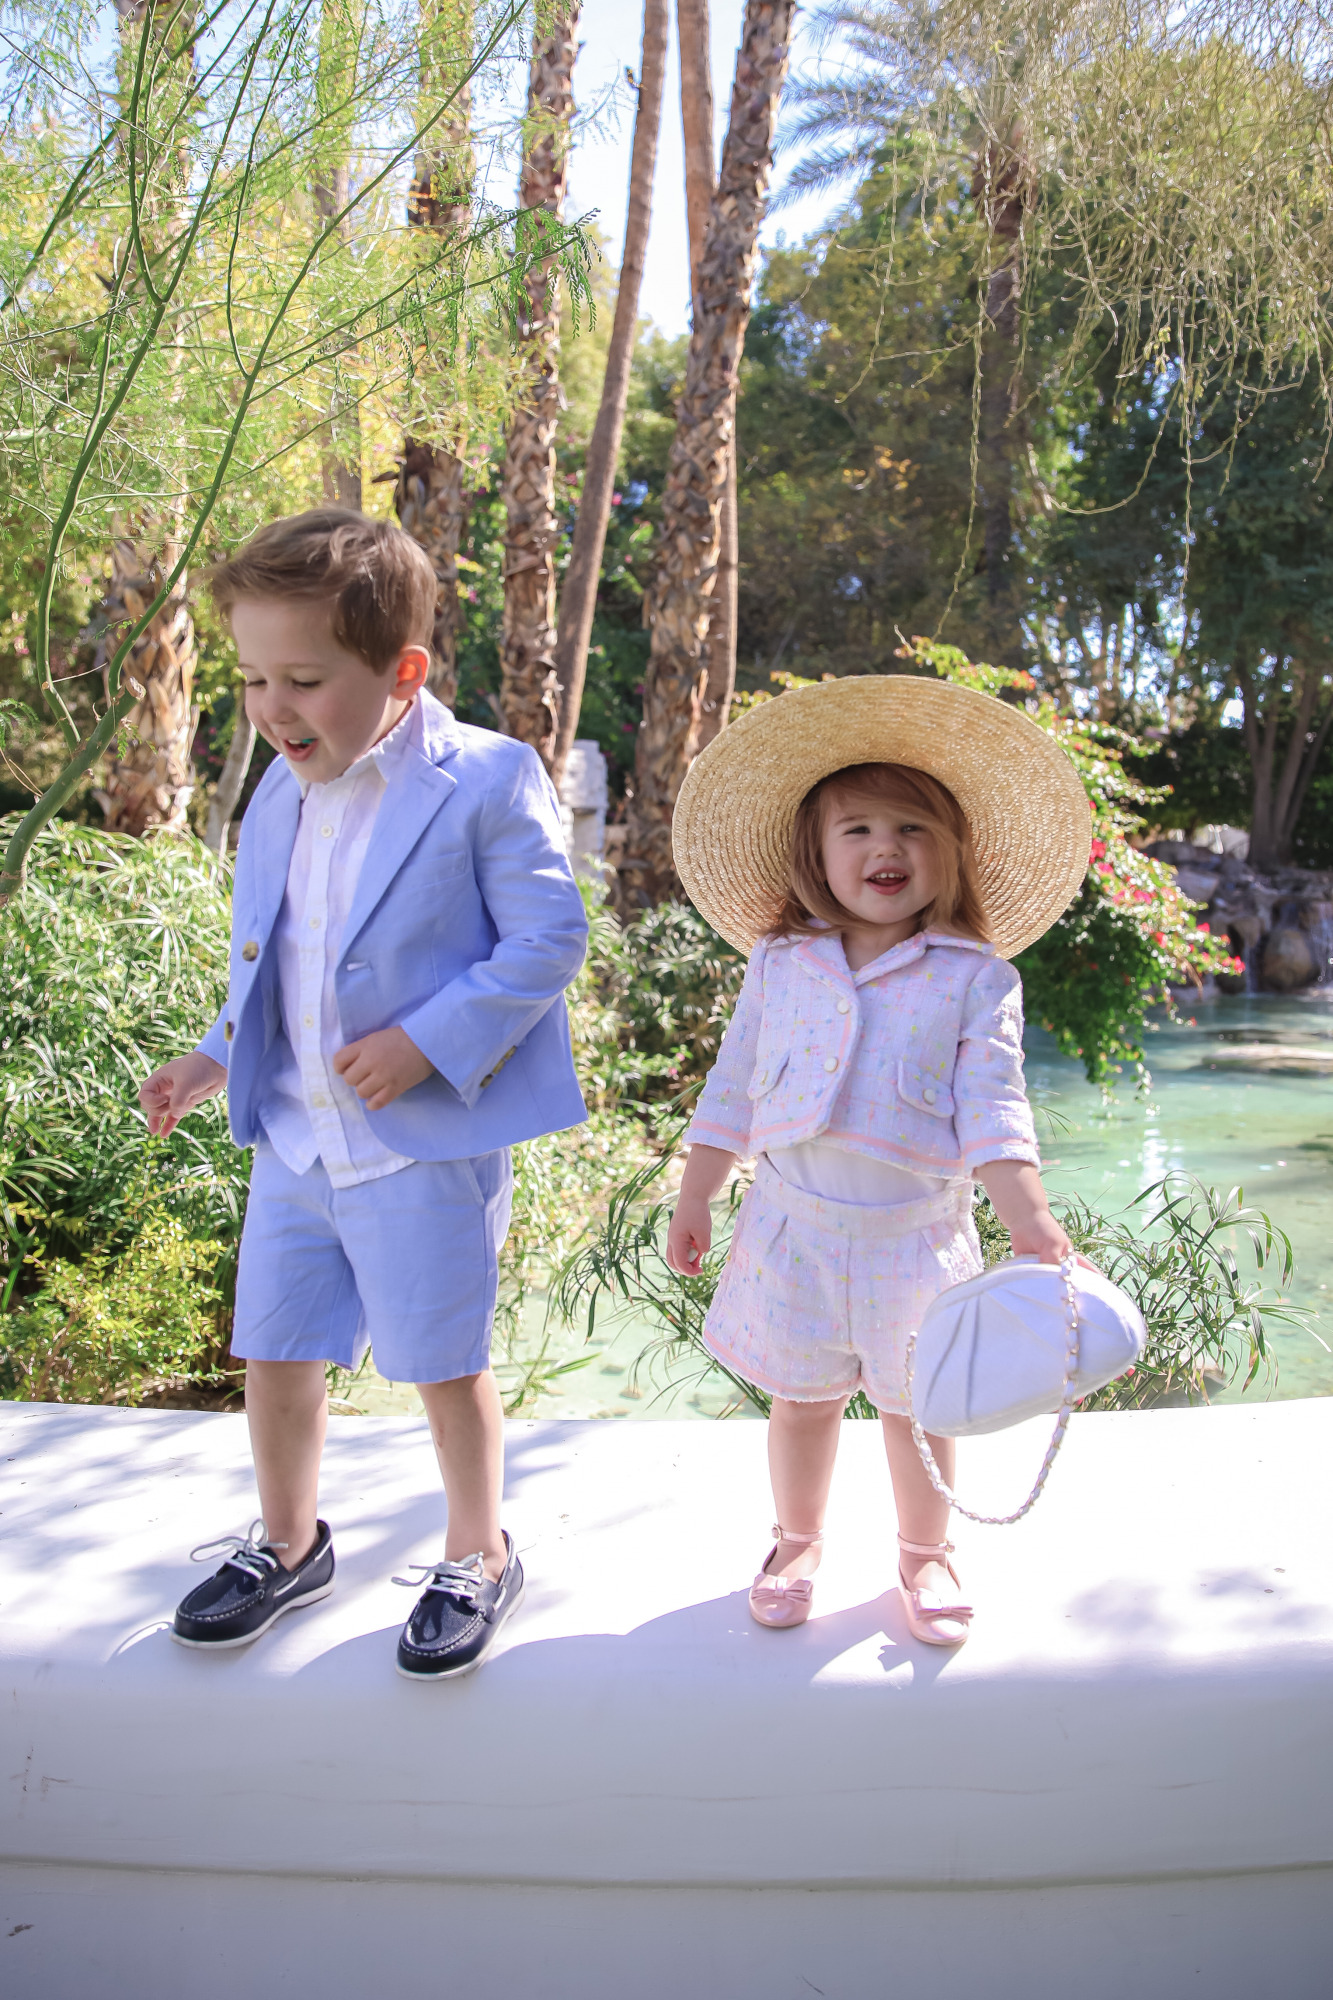 janie and jack easter kids outfits 2021, kids easter outfit ideas toddler, emily gemma, scottsdale fashion blog4 |Spring Outfit Ideas for Kids by popular US fashion blog, The Sweetest Thing: image of a young boy and girl standing outside next to a landscaped pond and wearing aPink Boucle Jacket, Pink Boucle Shorts, Pink Bow Flats, White Purse, Straw Sun Hat, Seersucker Blazer, Seersucker Shorts, White Button-down, and Leather Boat Shoes.